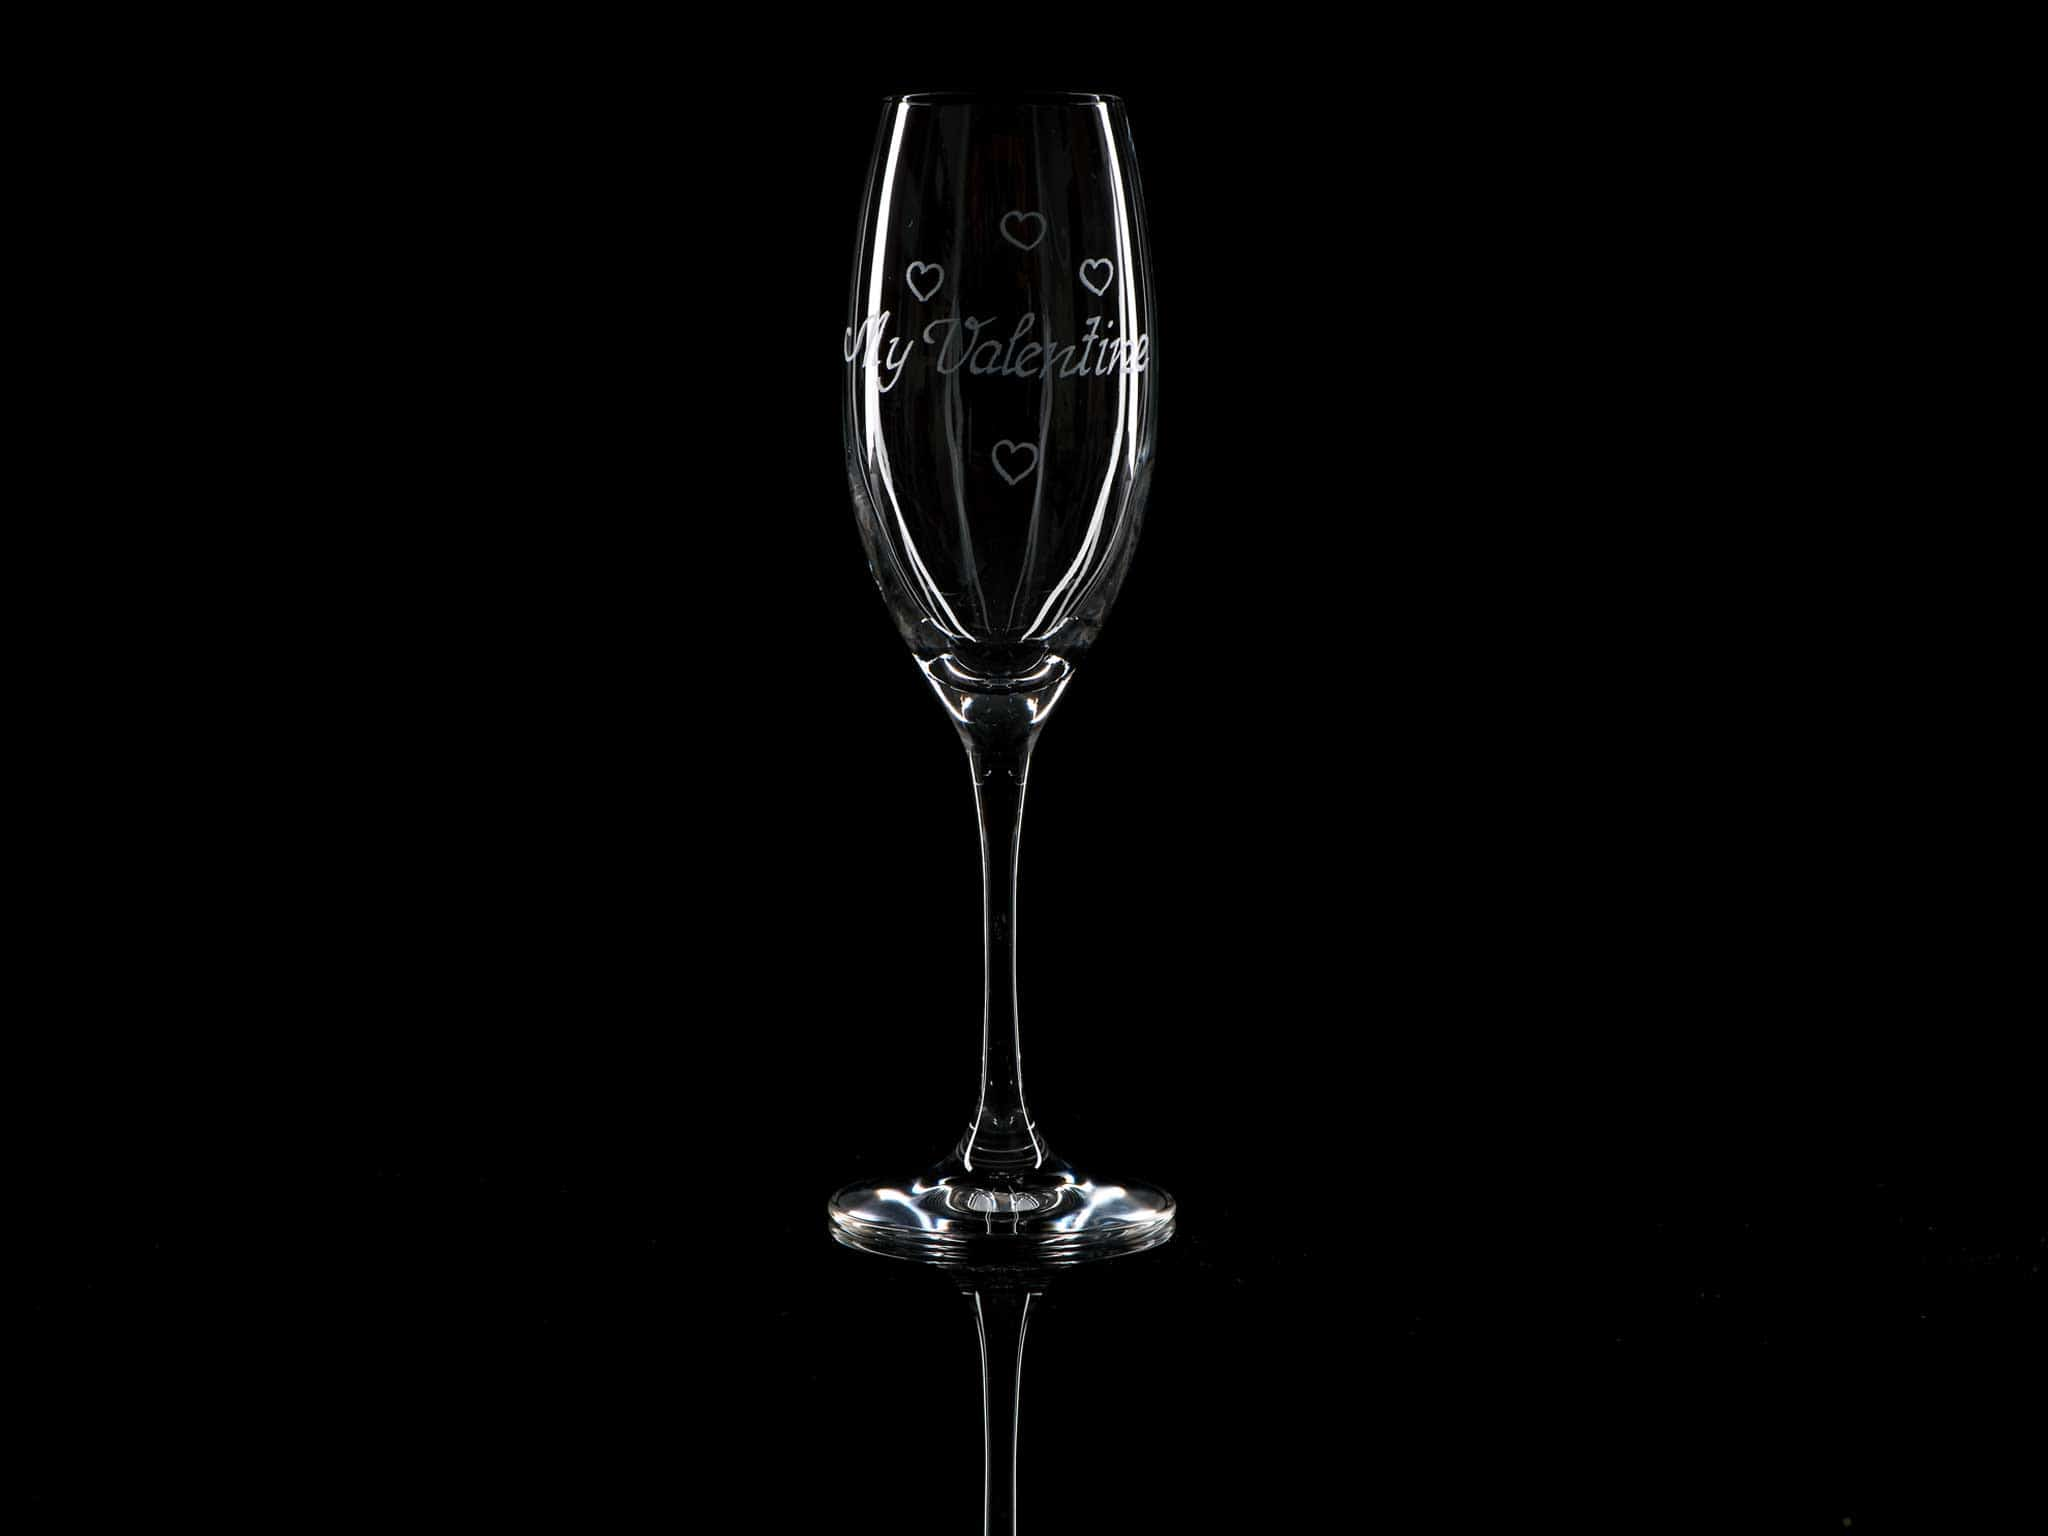 Crystal Champagne Flute - My Valentine